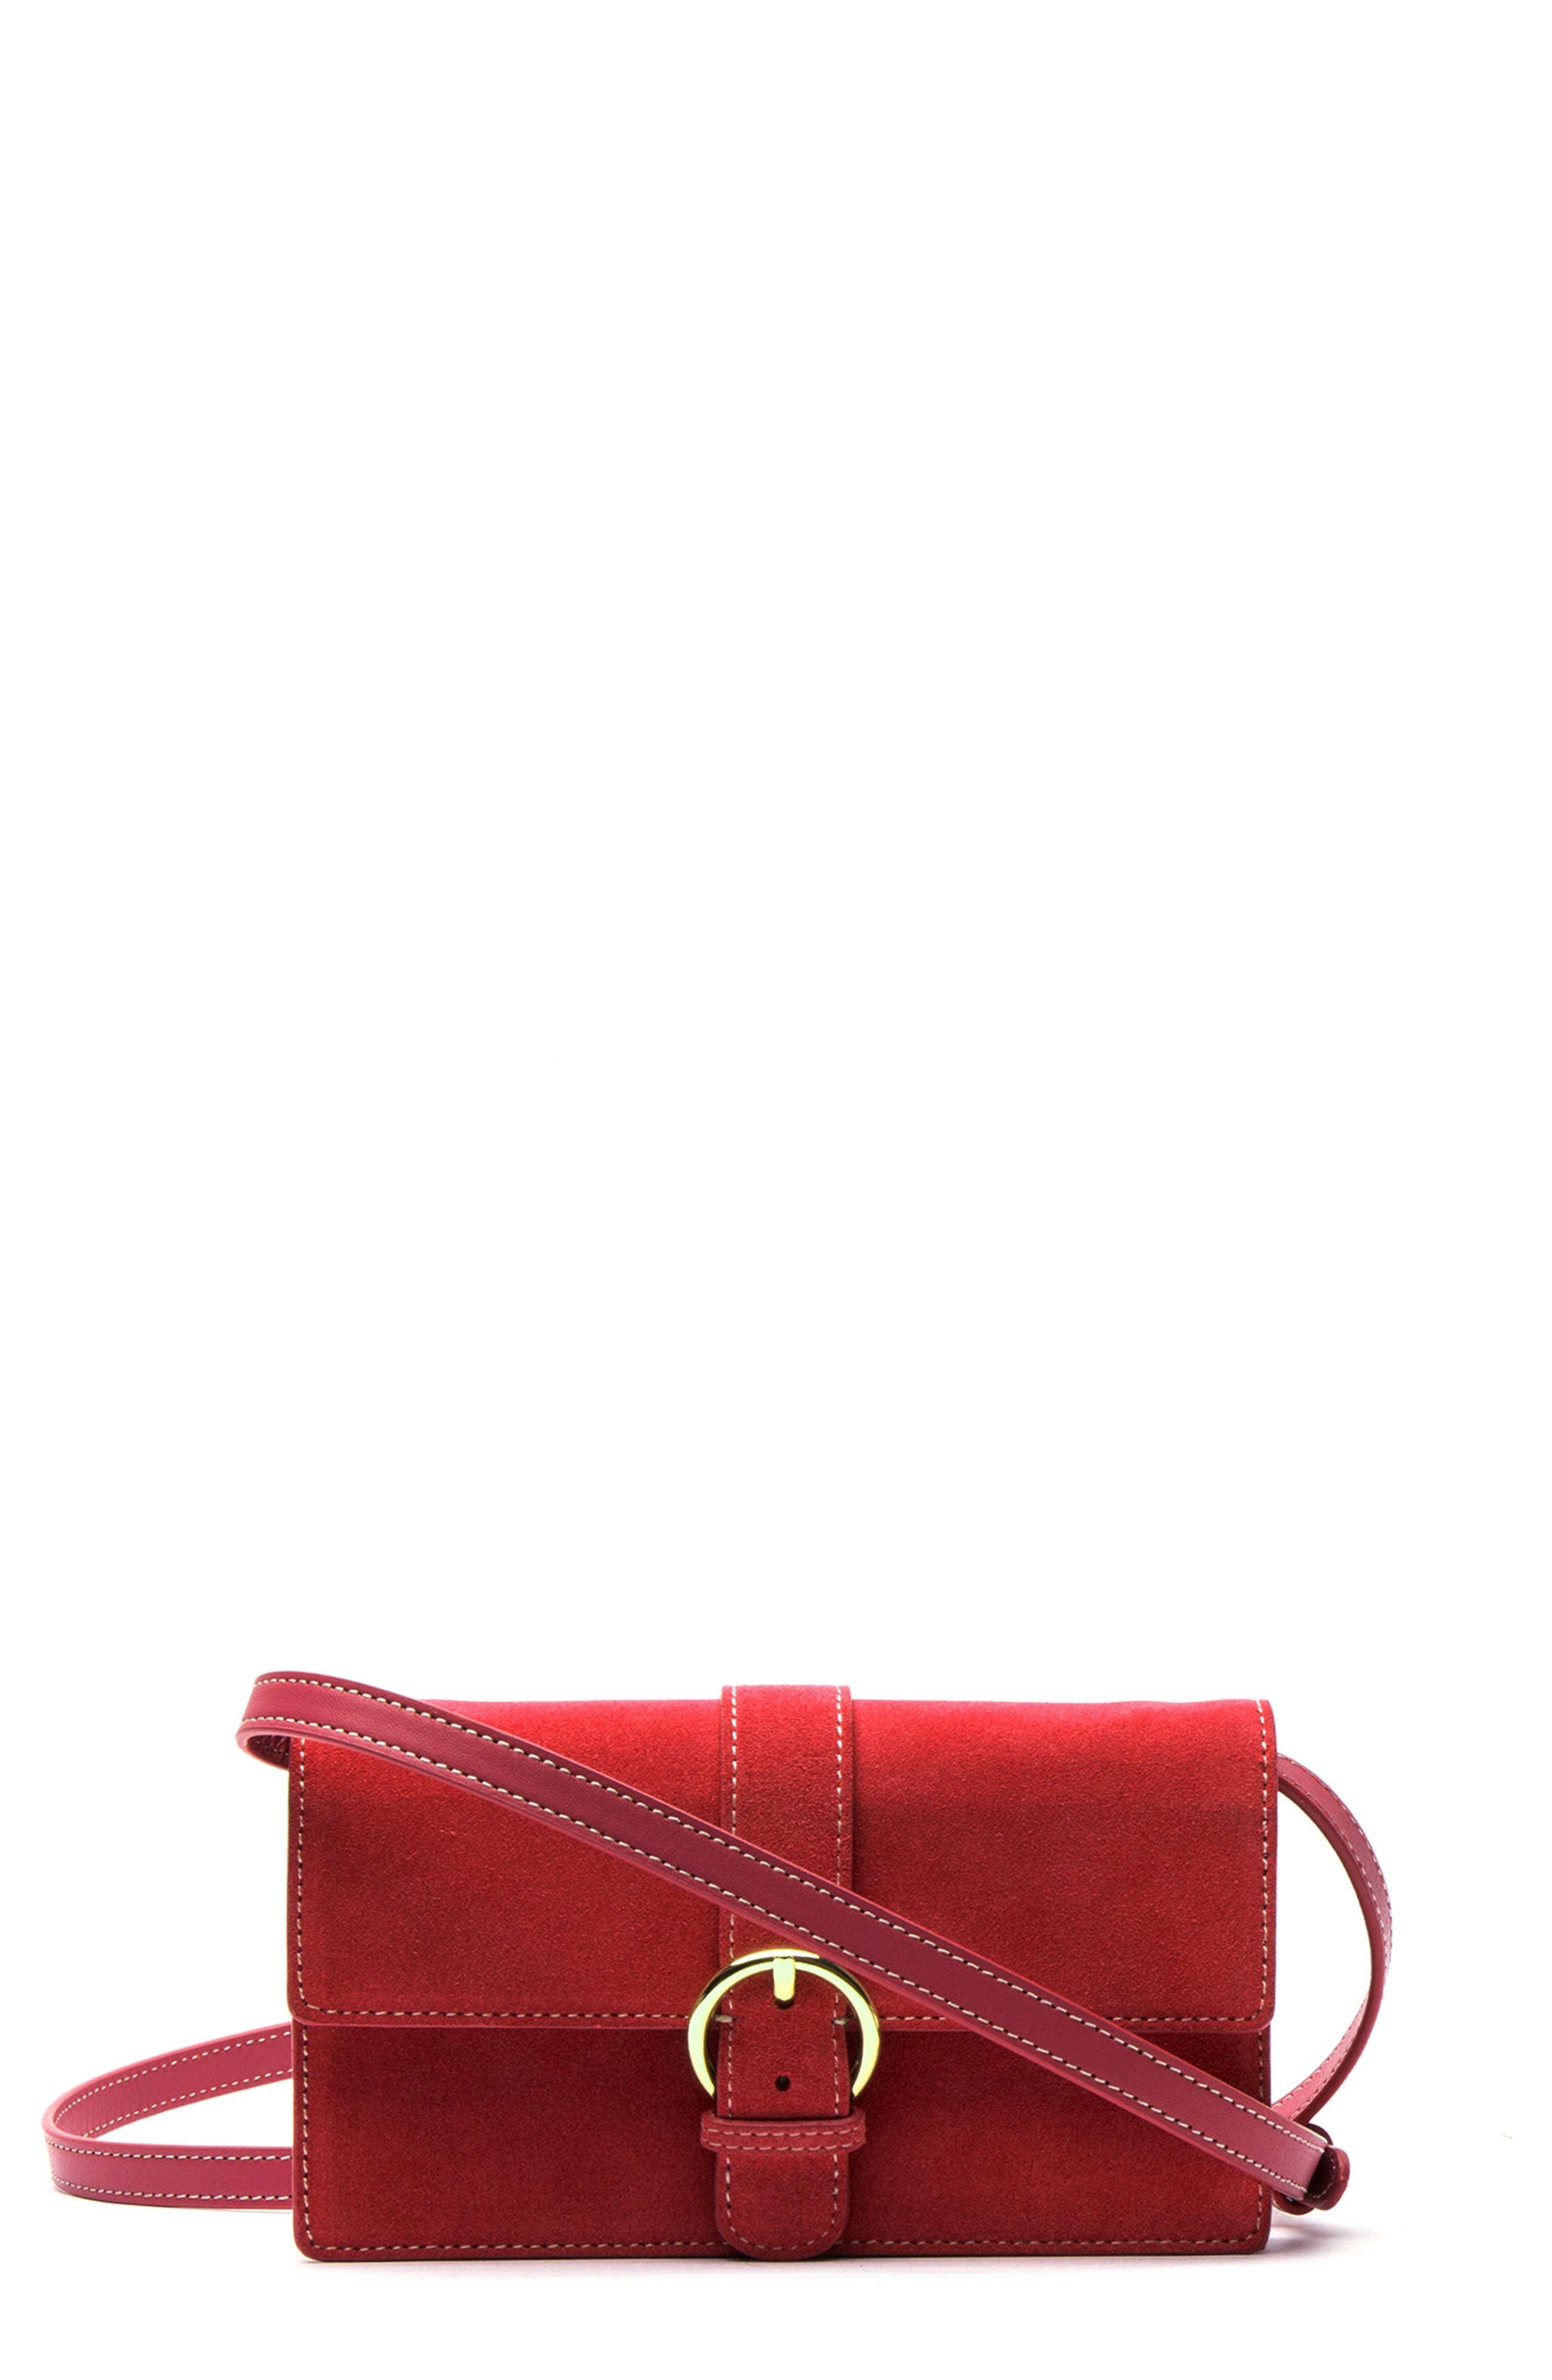 Suede Crossbody Wallet,                             Main thumbnail 1, color,                             RED